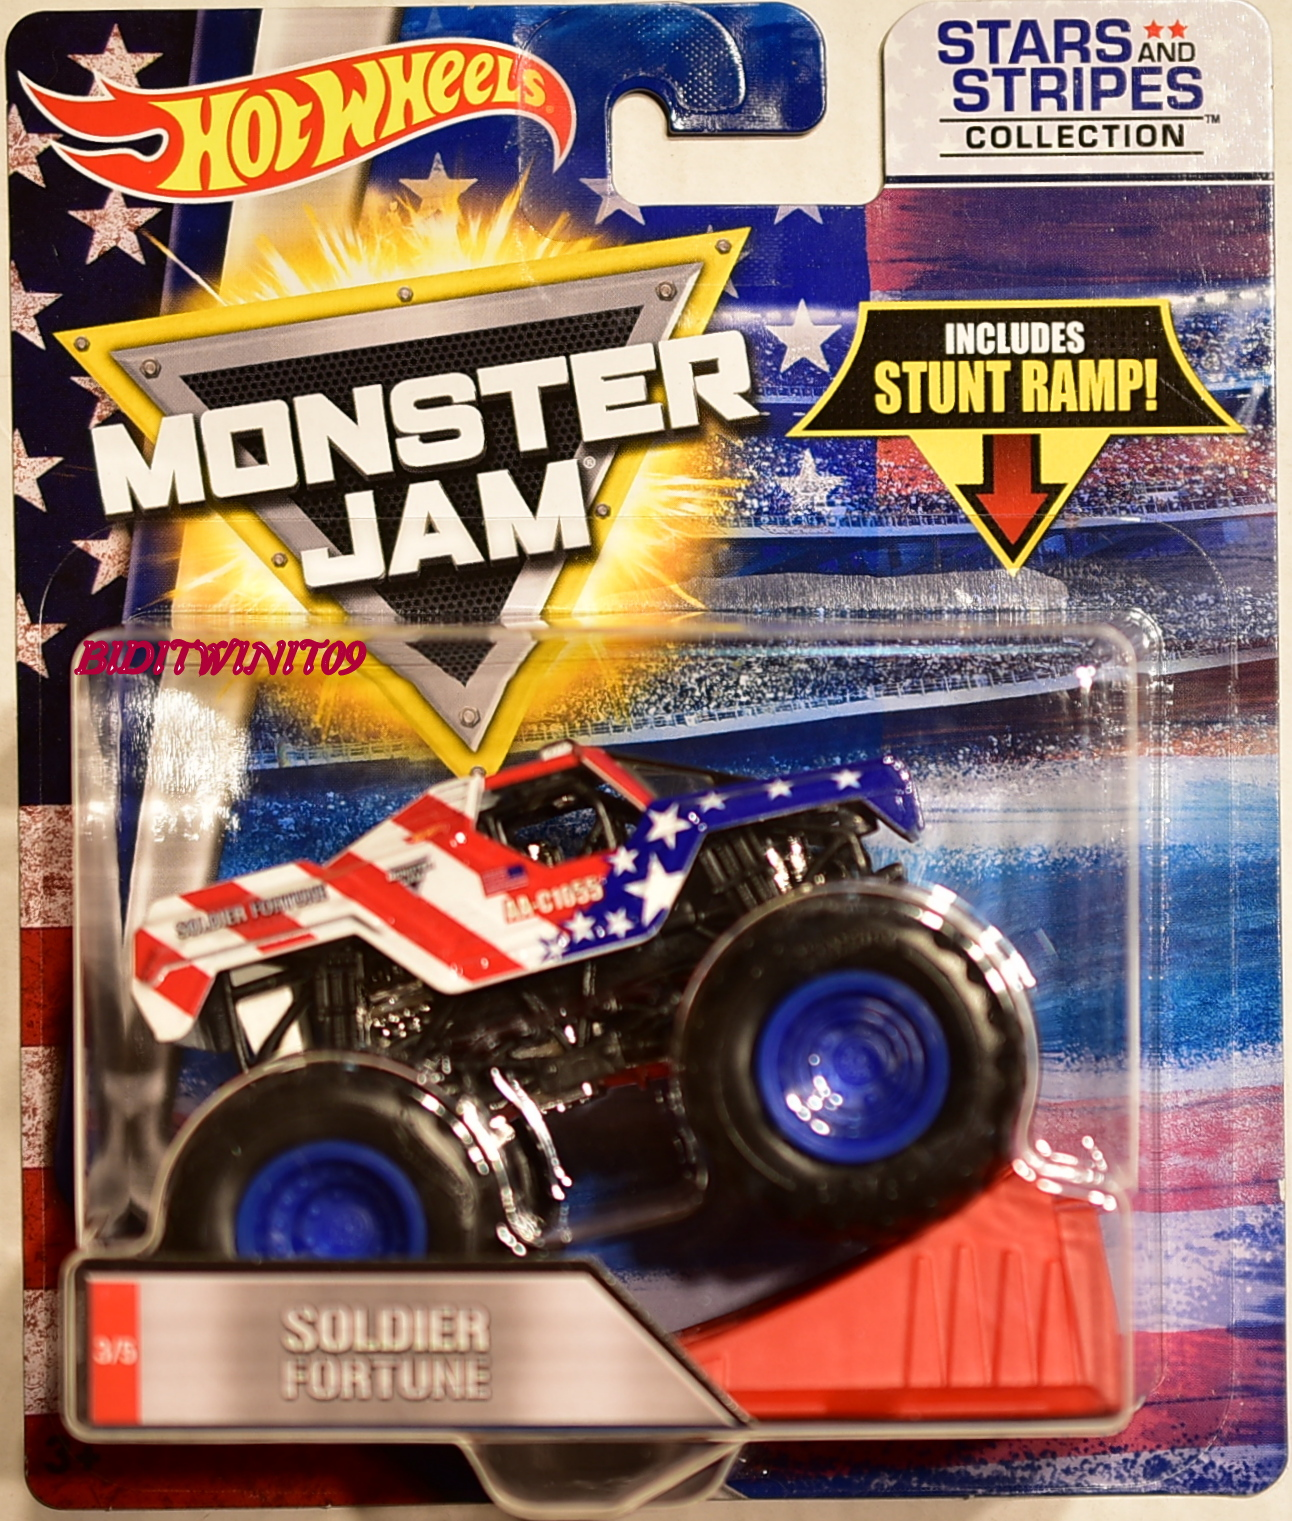 HOT WHEELS MONSTER JAM STARS AND STRIPERS COLLECTION STUNT RAMP SOLDIER FORTUNE